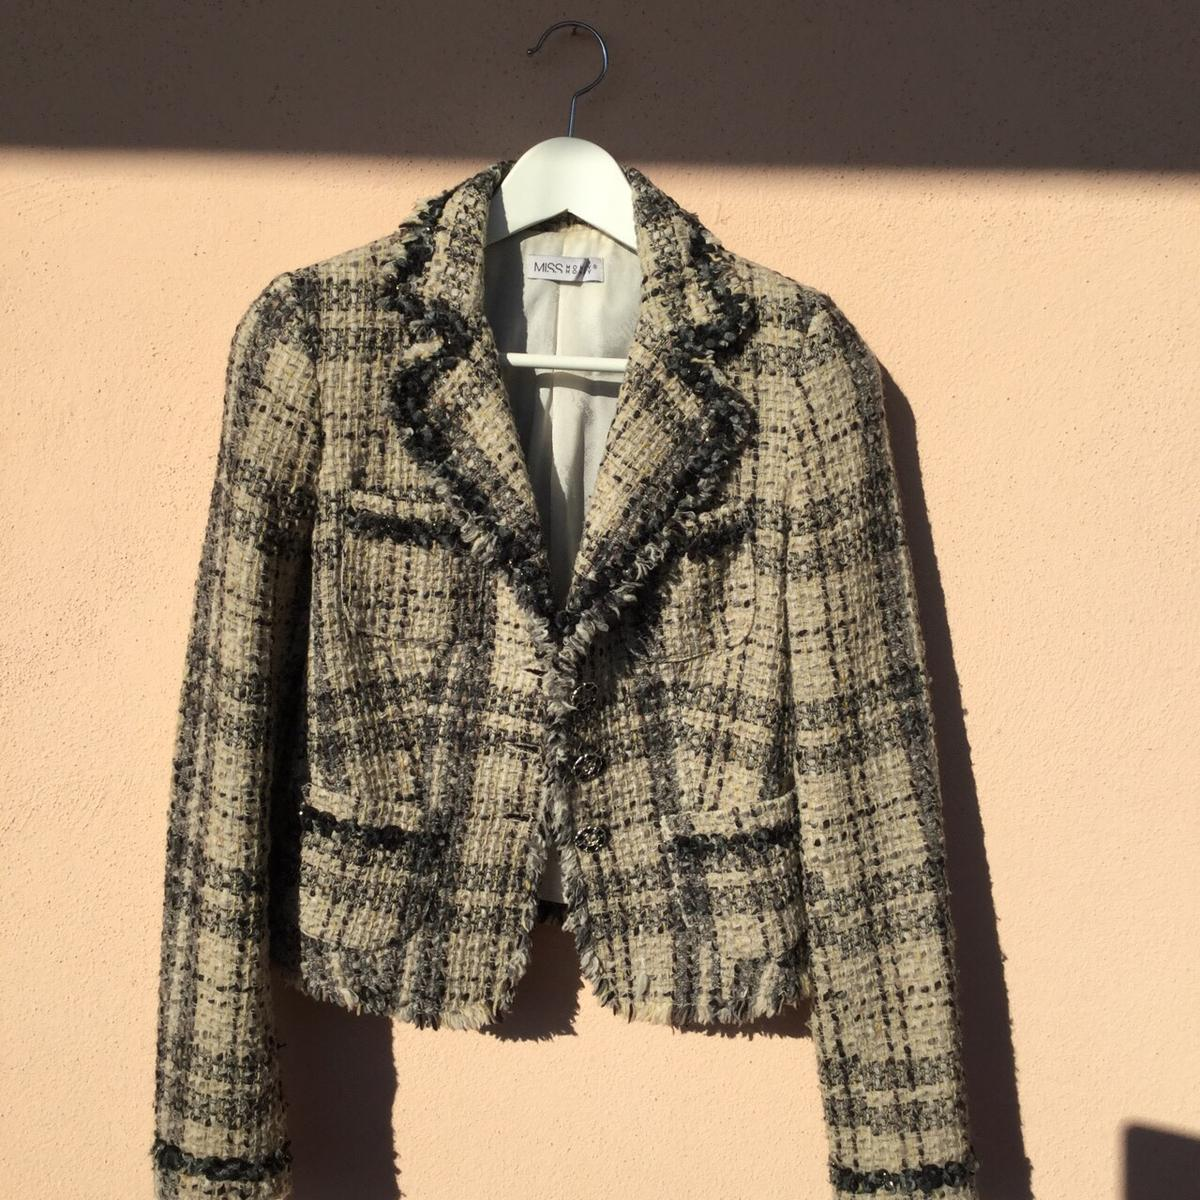 best website b691a 68eb4 Giacca modello Chanel in 00127 Roma for €14.00 for sale - Shpock